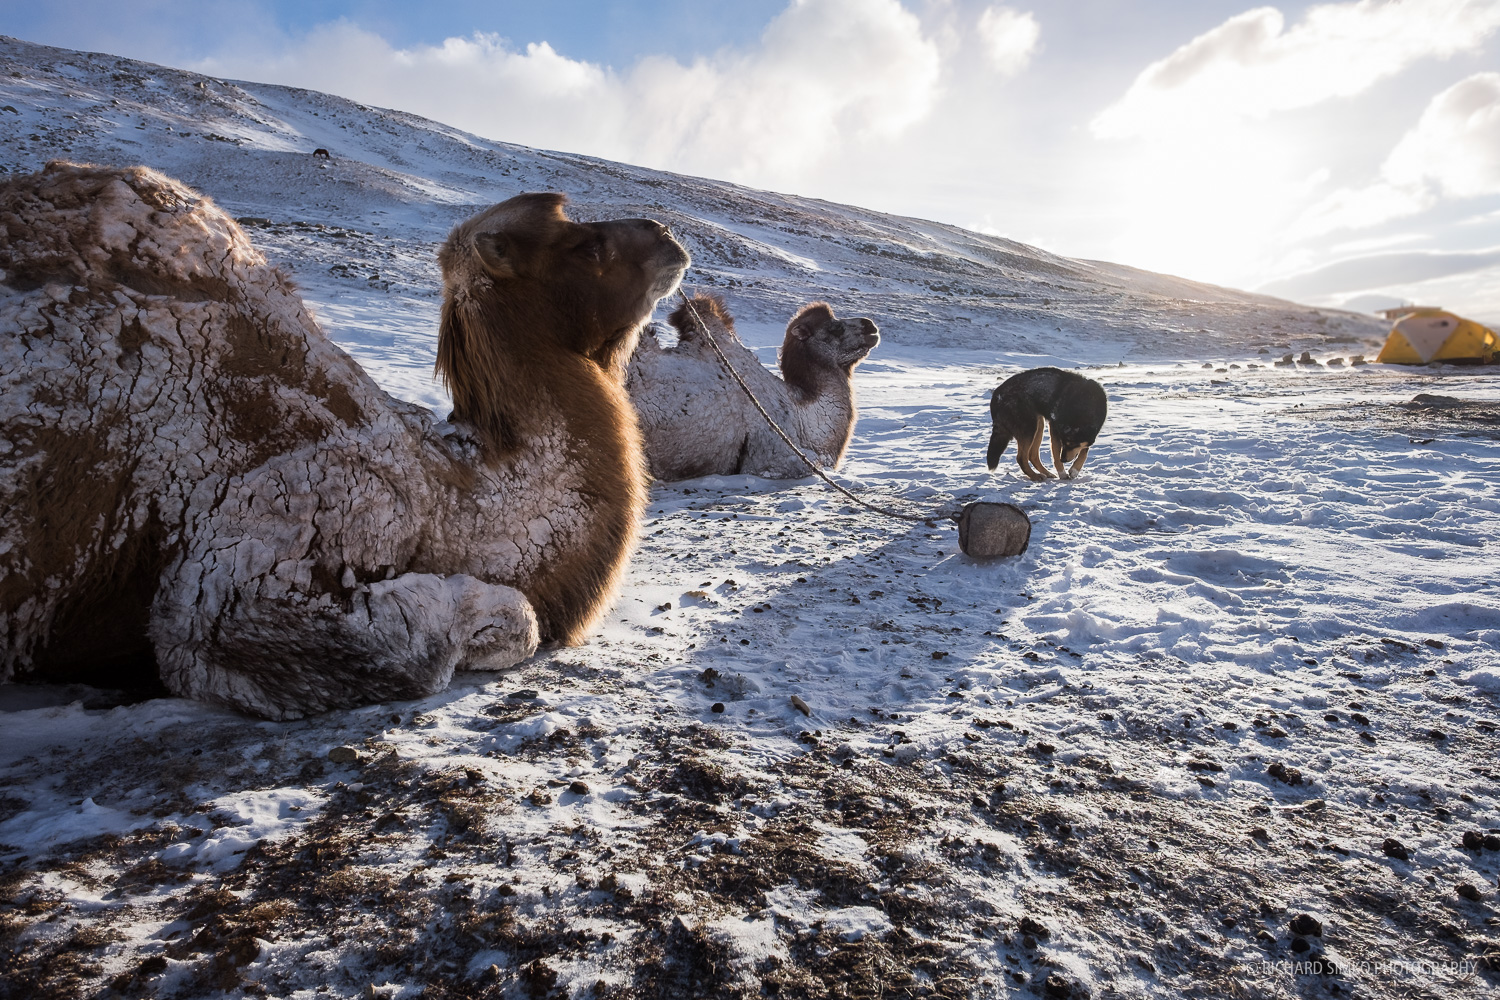 These amazingly though animals slept overnight outside at basecamp in subzero temperatures and strong wind gusts without any problem.